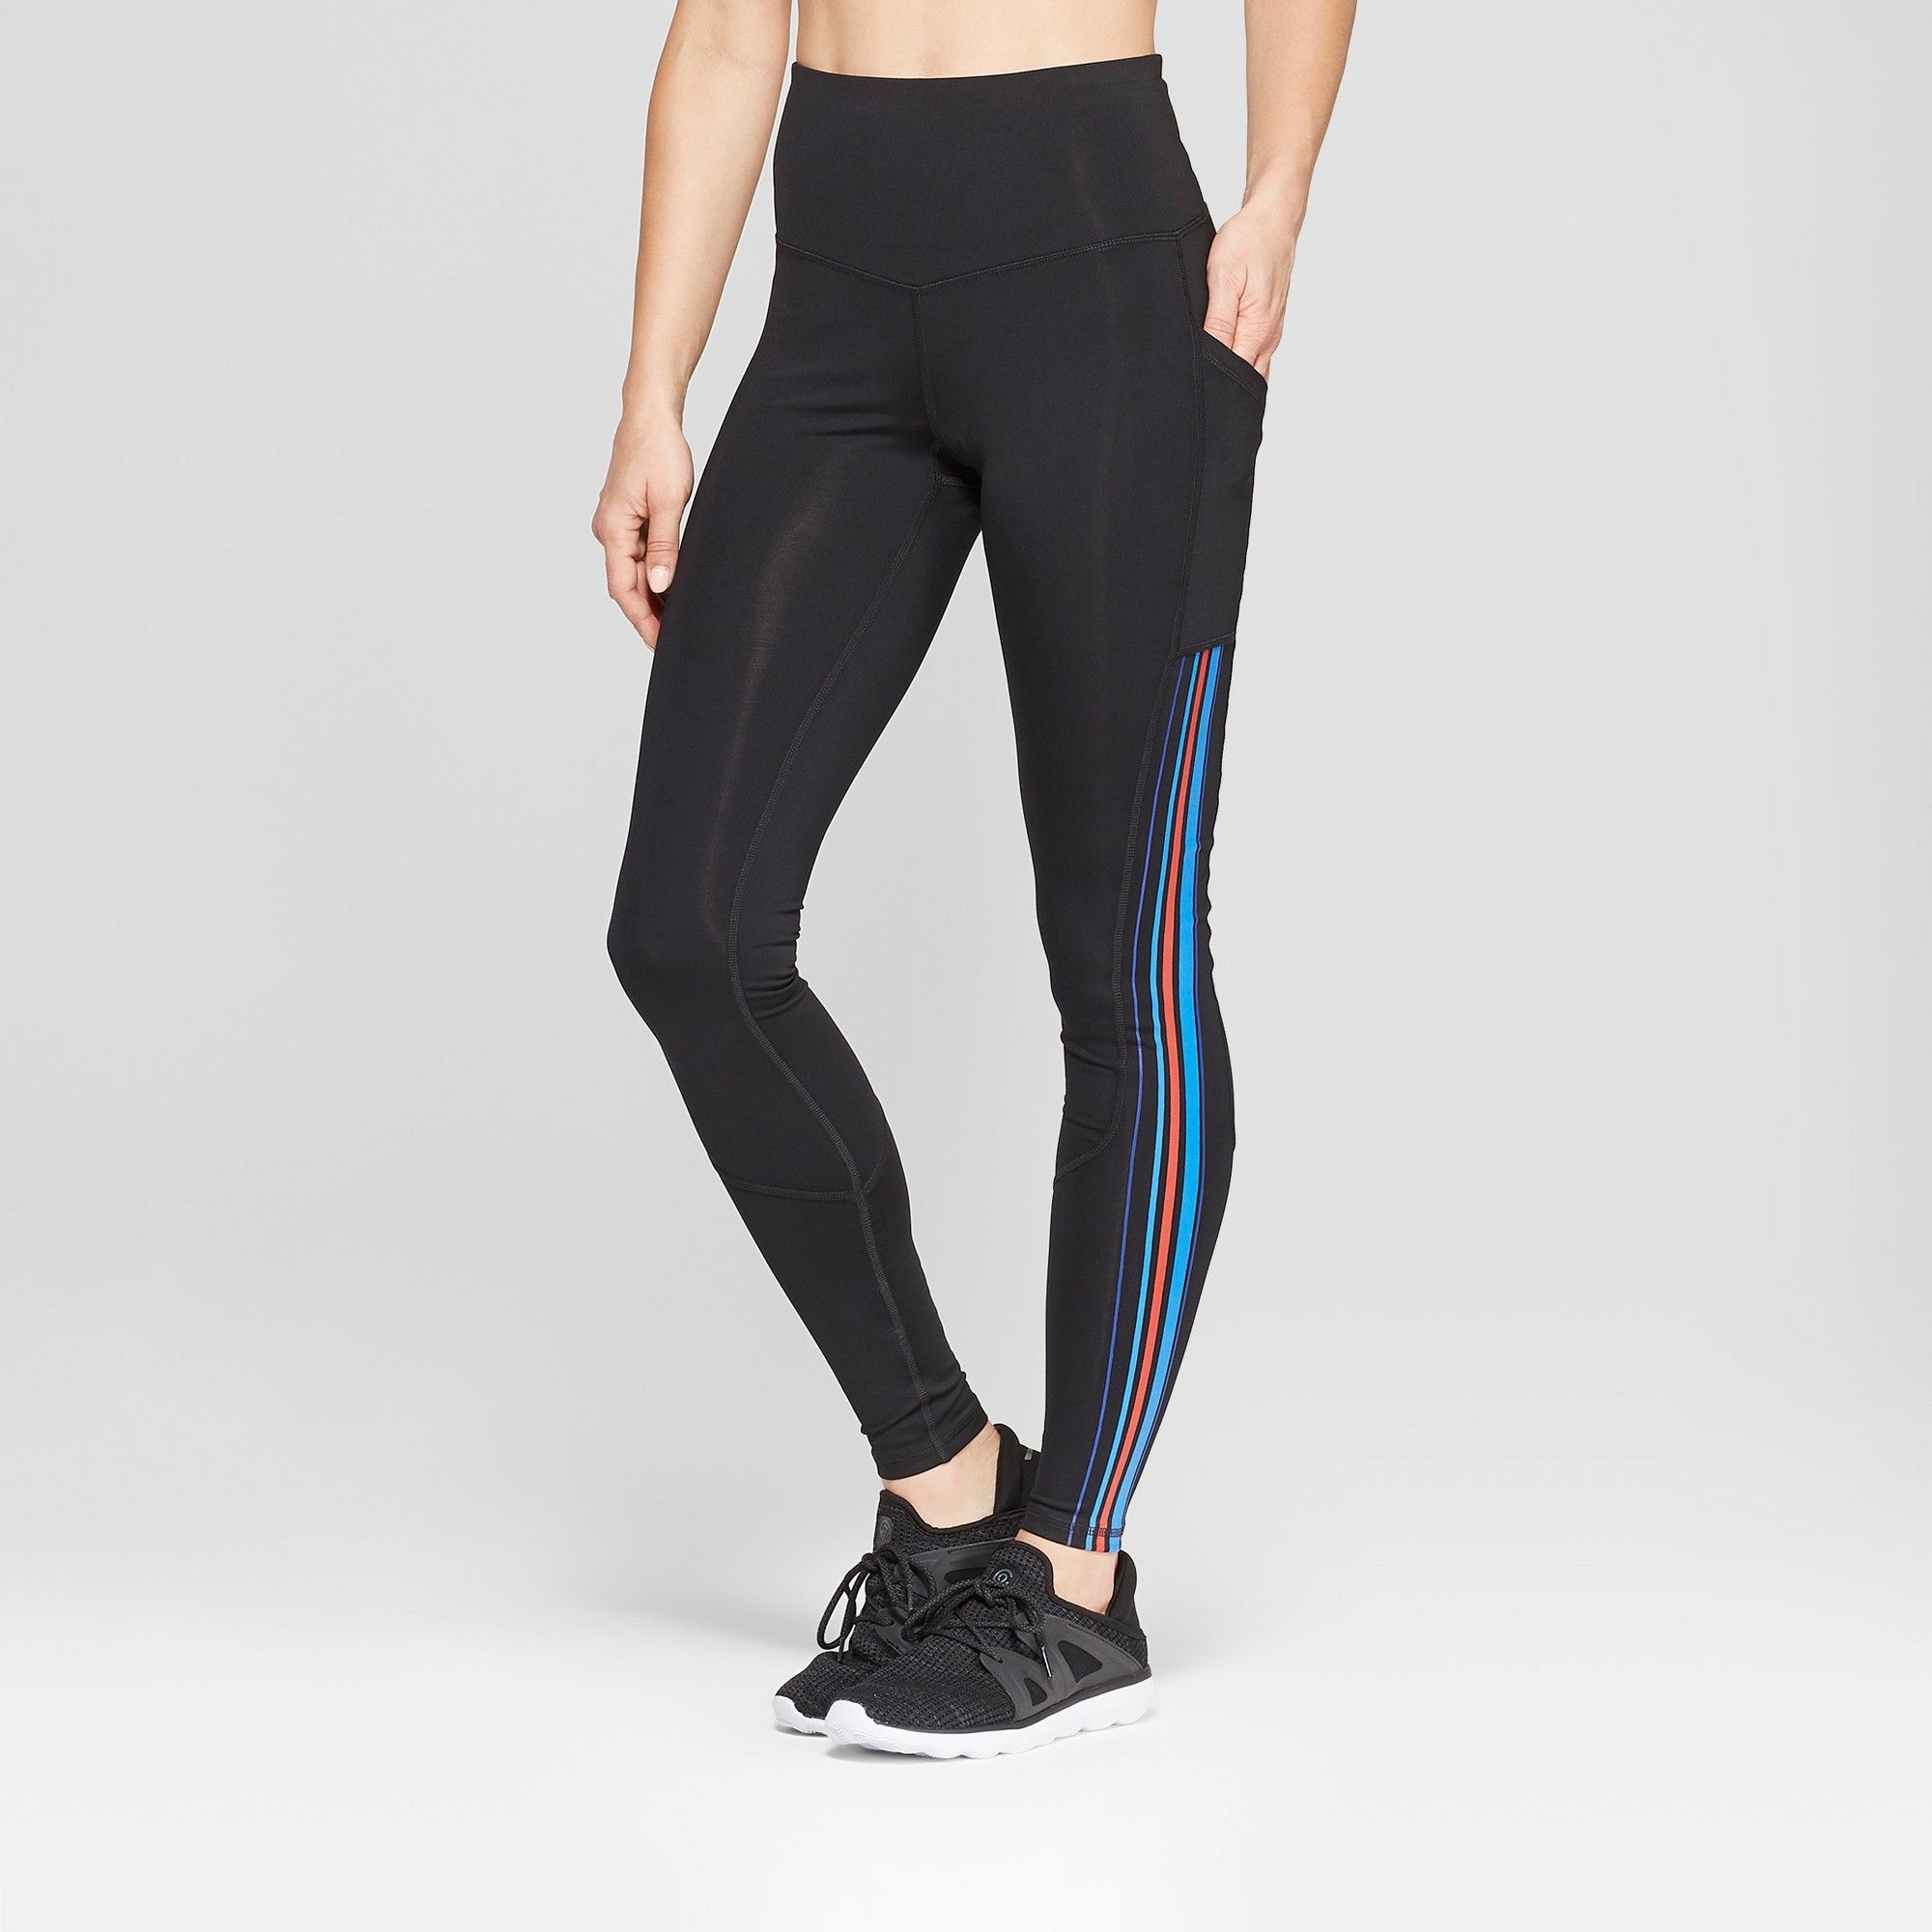 ae1c83c743b1 Women s Striped Training High-Waisted Leggings 28.5 - C9 Champion Black XS